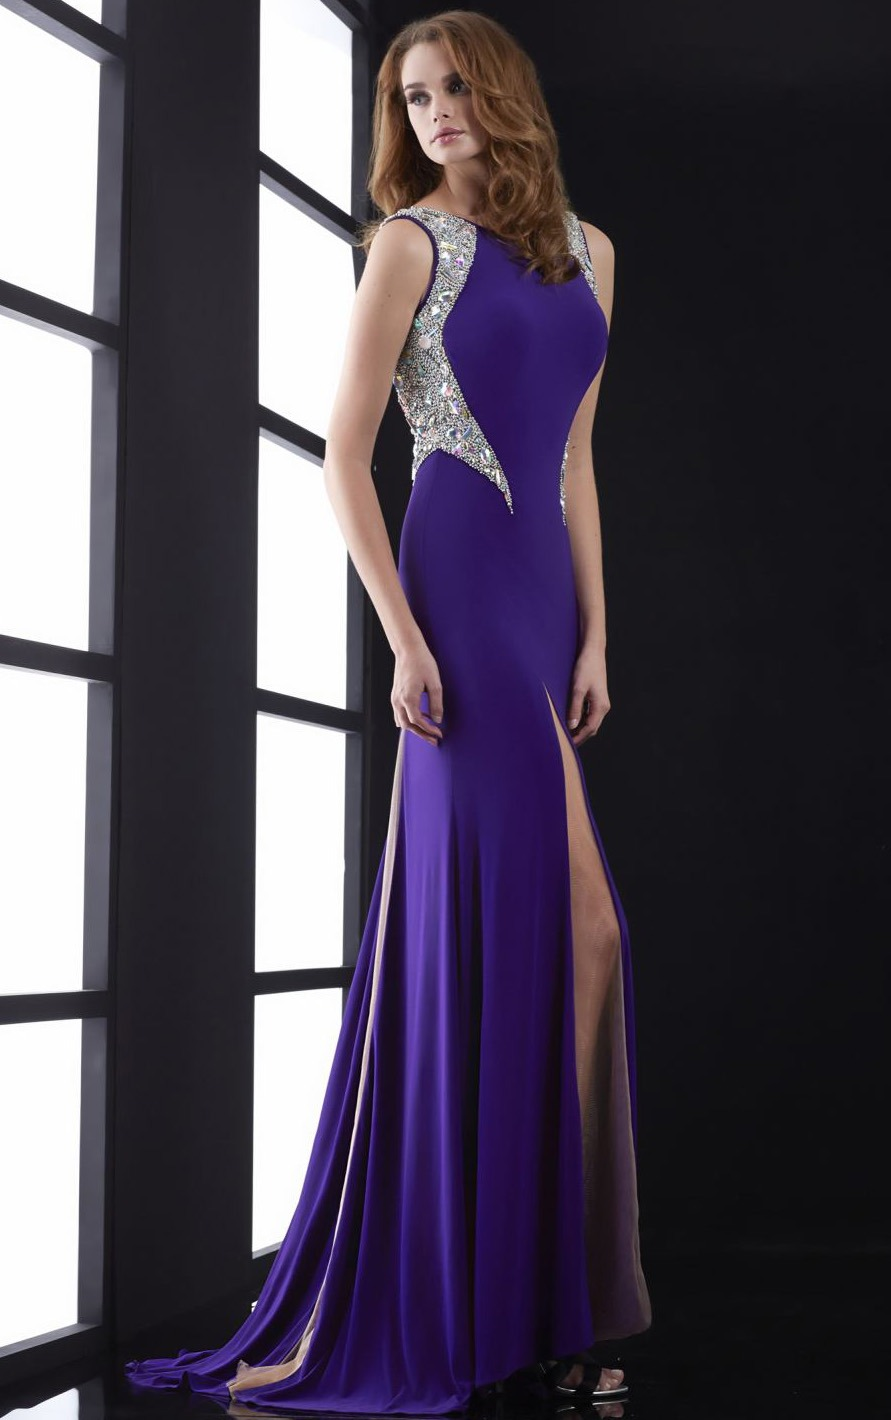 Trendy Prom 2016 dresses from Sherry London - Chamber of beauty